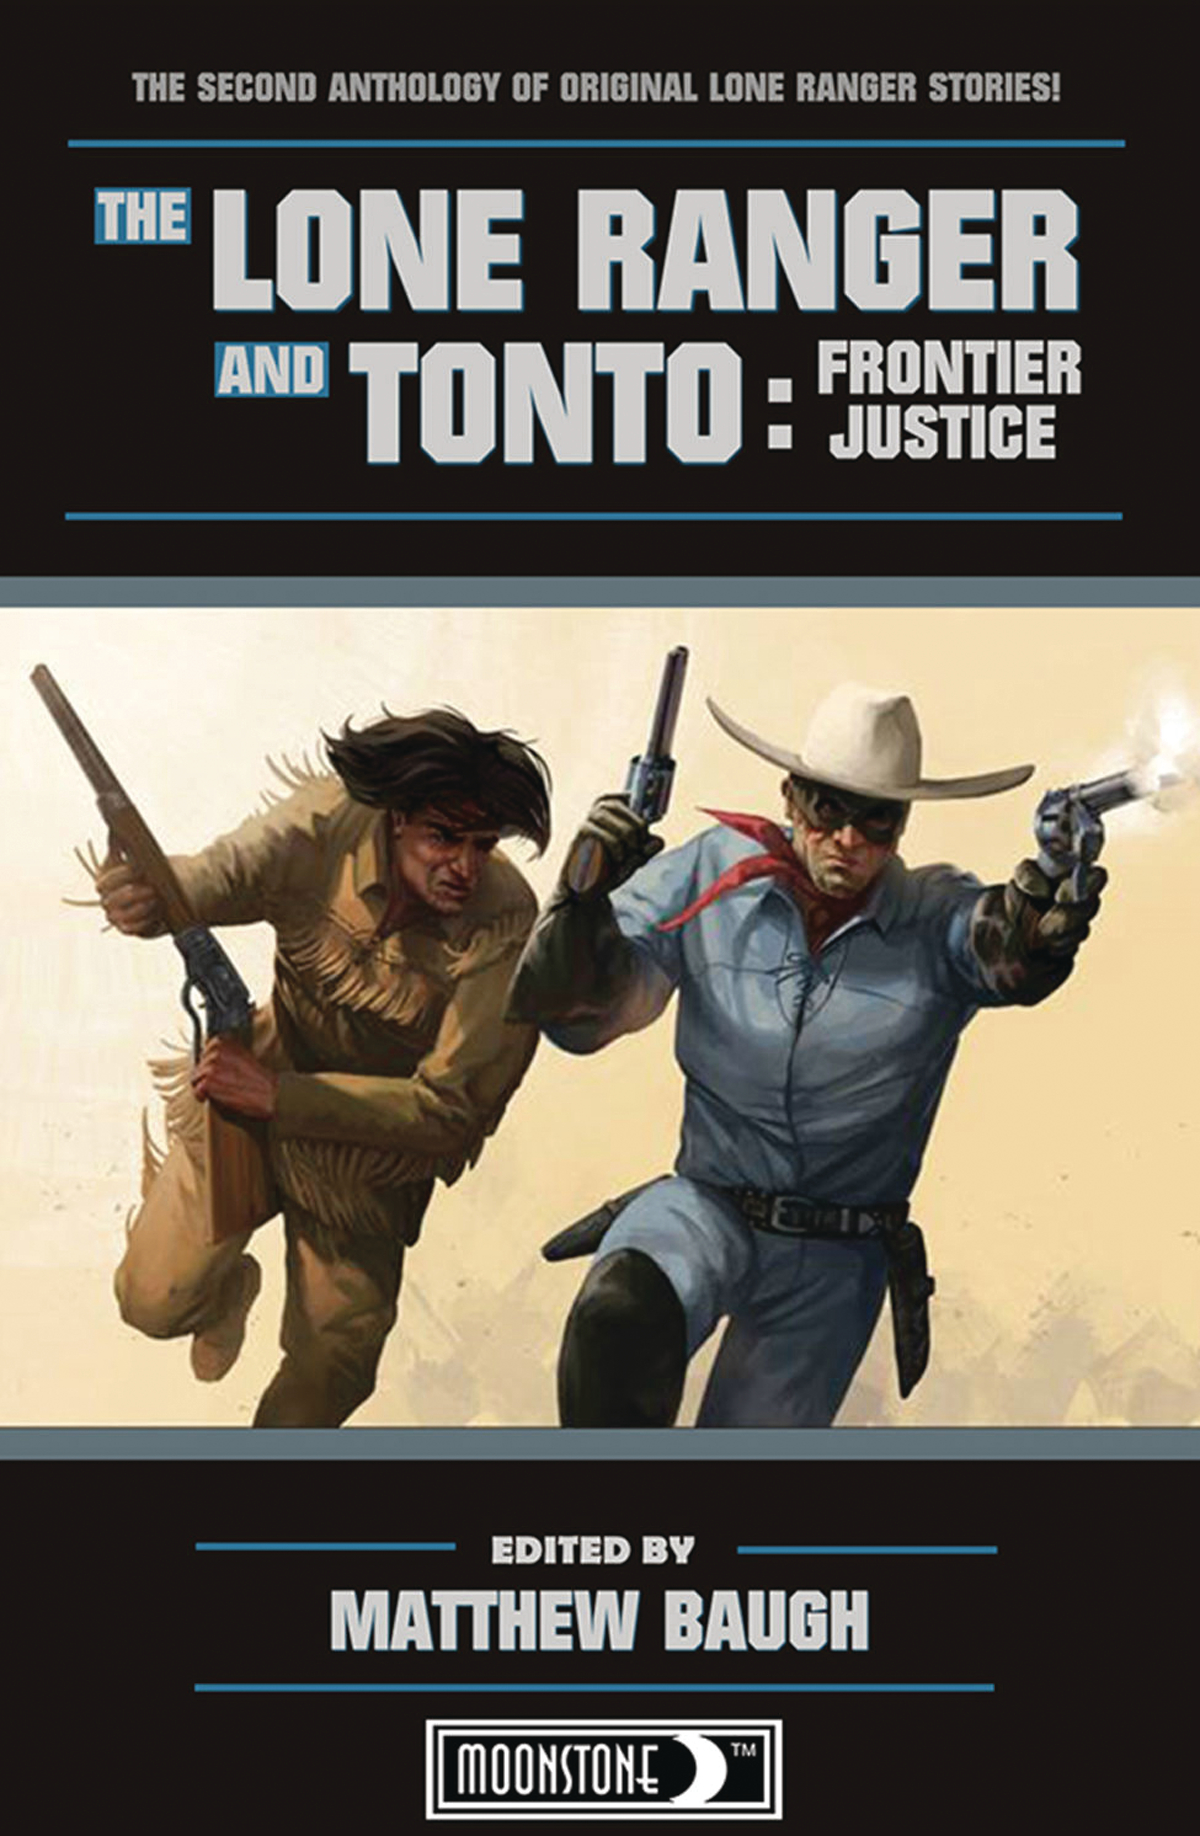 THE LONE RANGER AND TONTO PROSE NOVEL SC